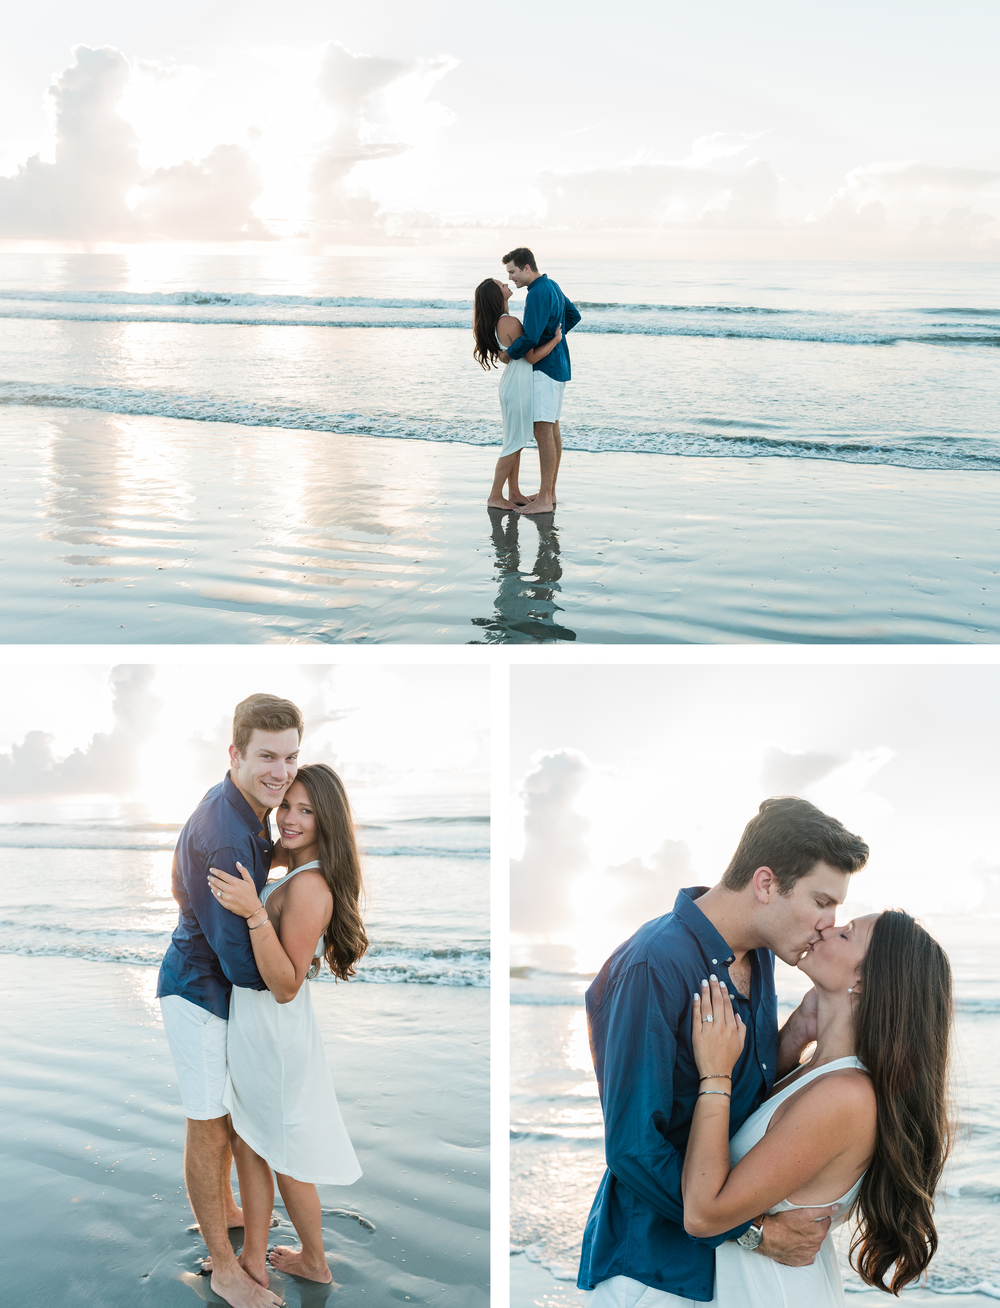 Evan Haley Engagement_Pawleys Island SC_Kristen Paige Photography_Gallery 12.png